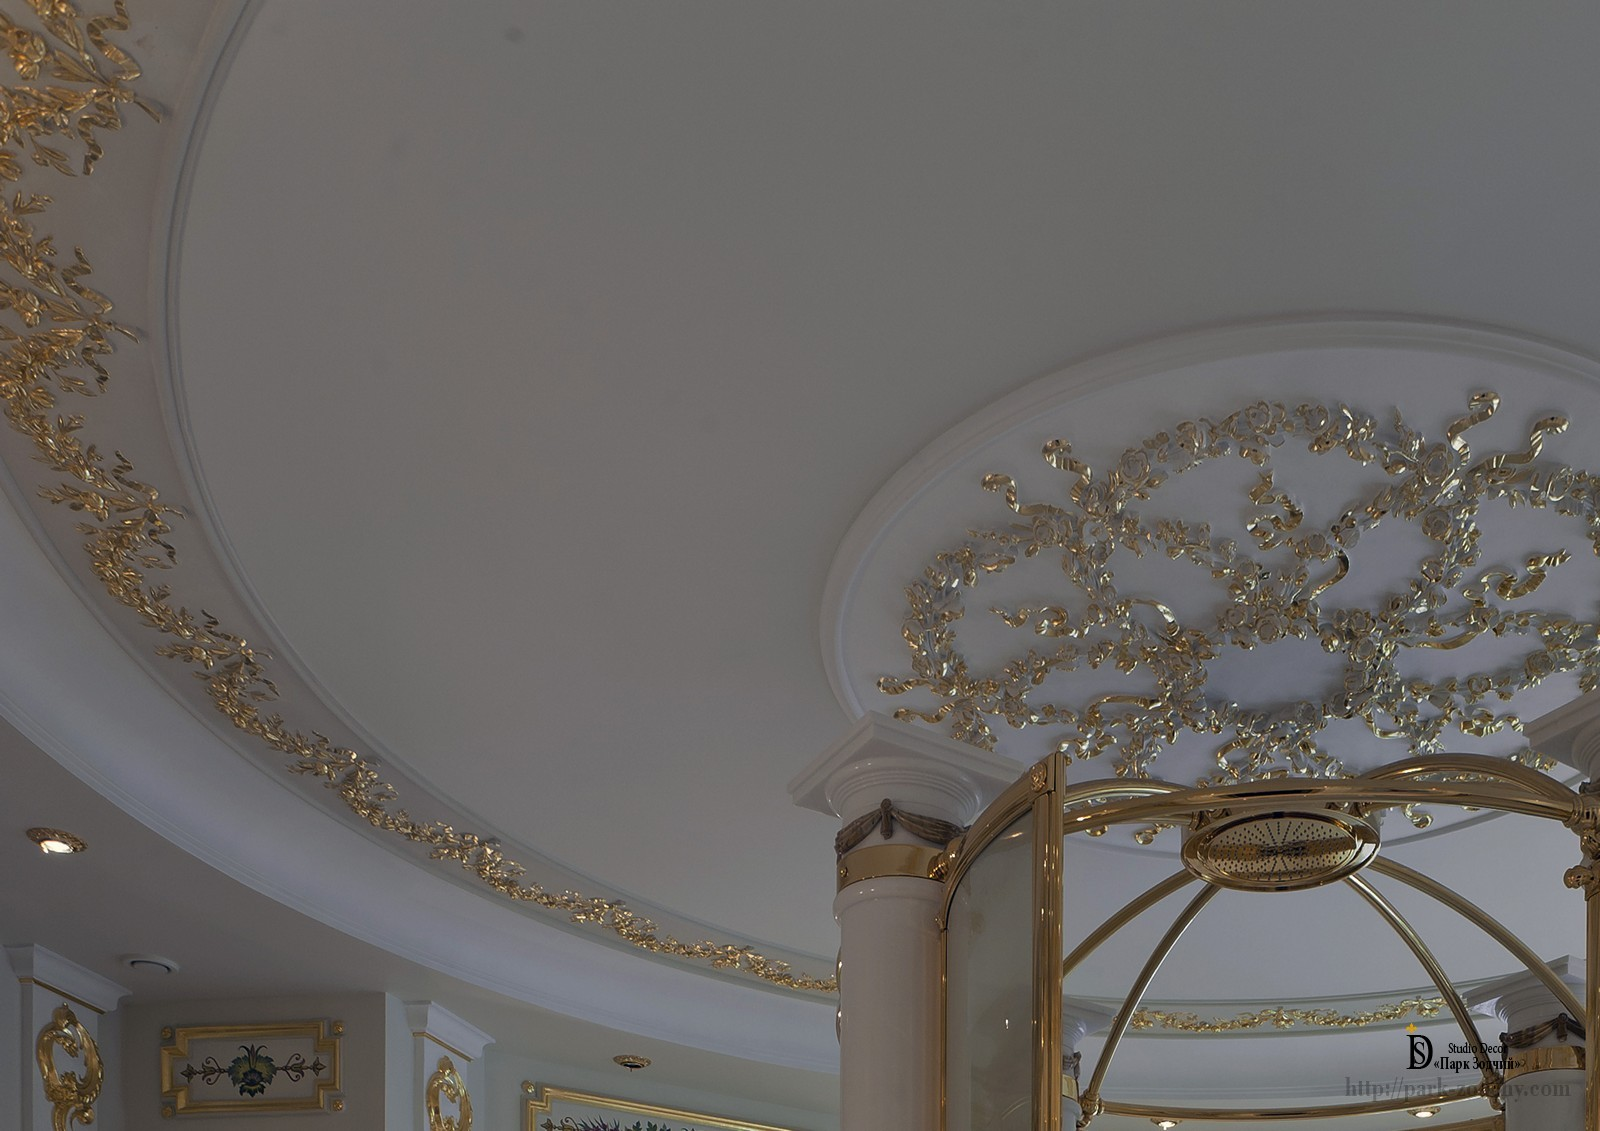 Gold-plate bathroom ceiling